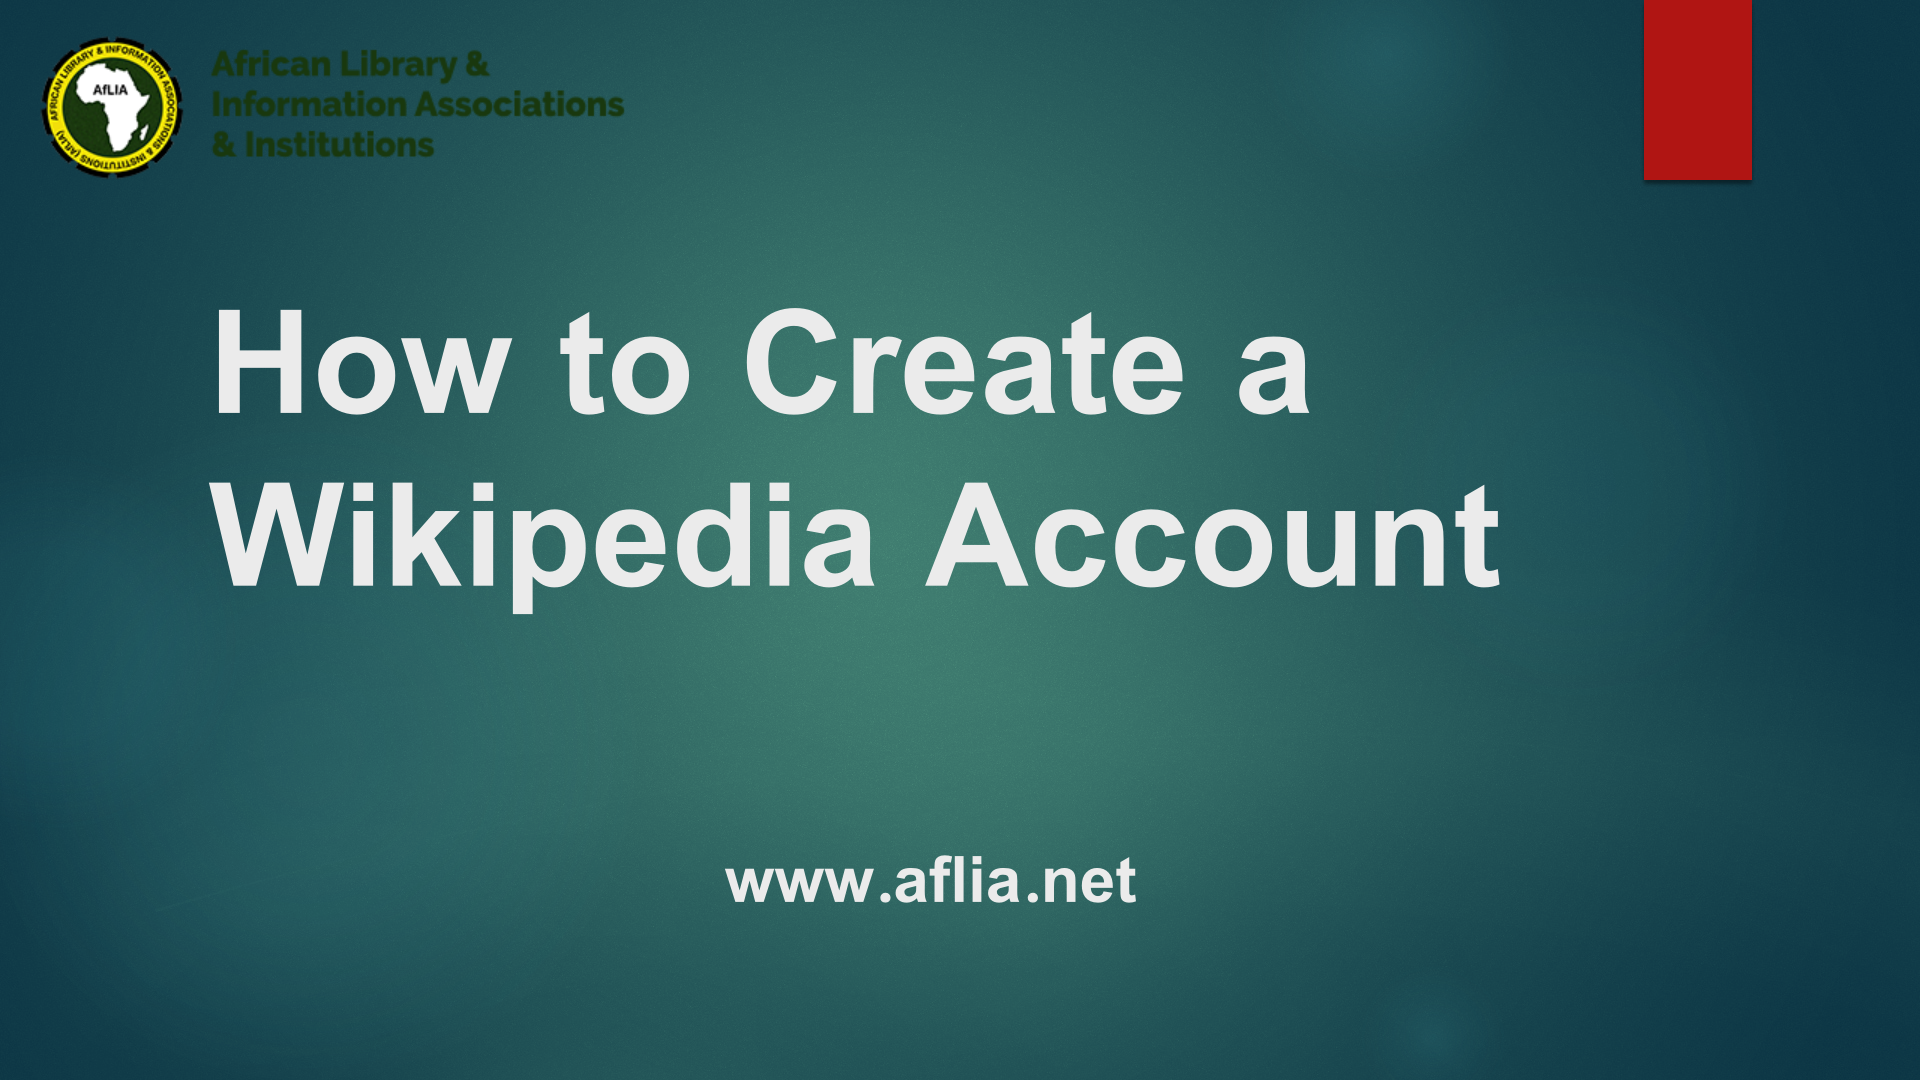 How to create a Wikipedia Account